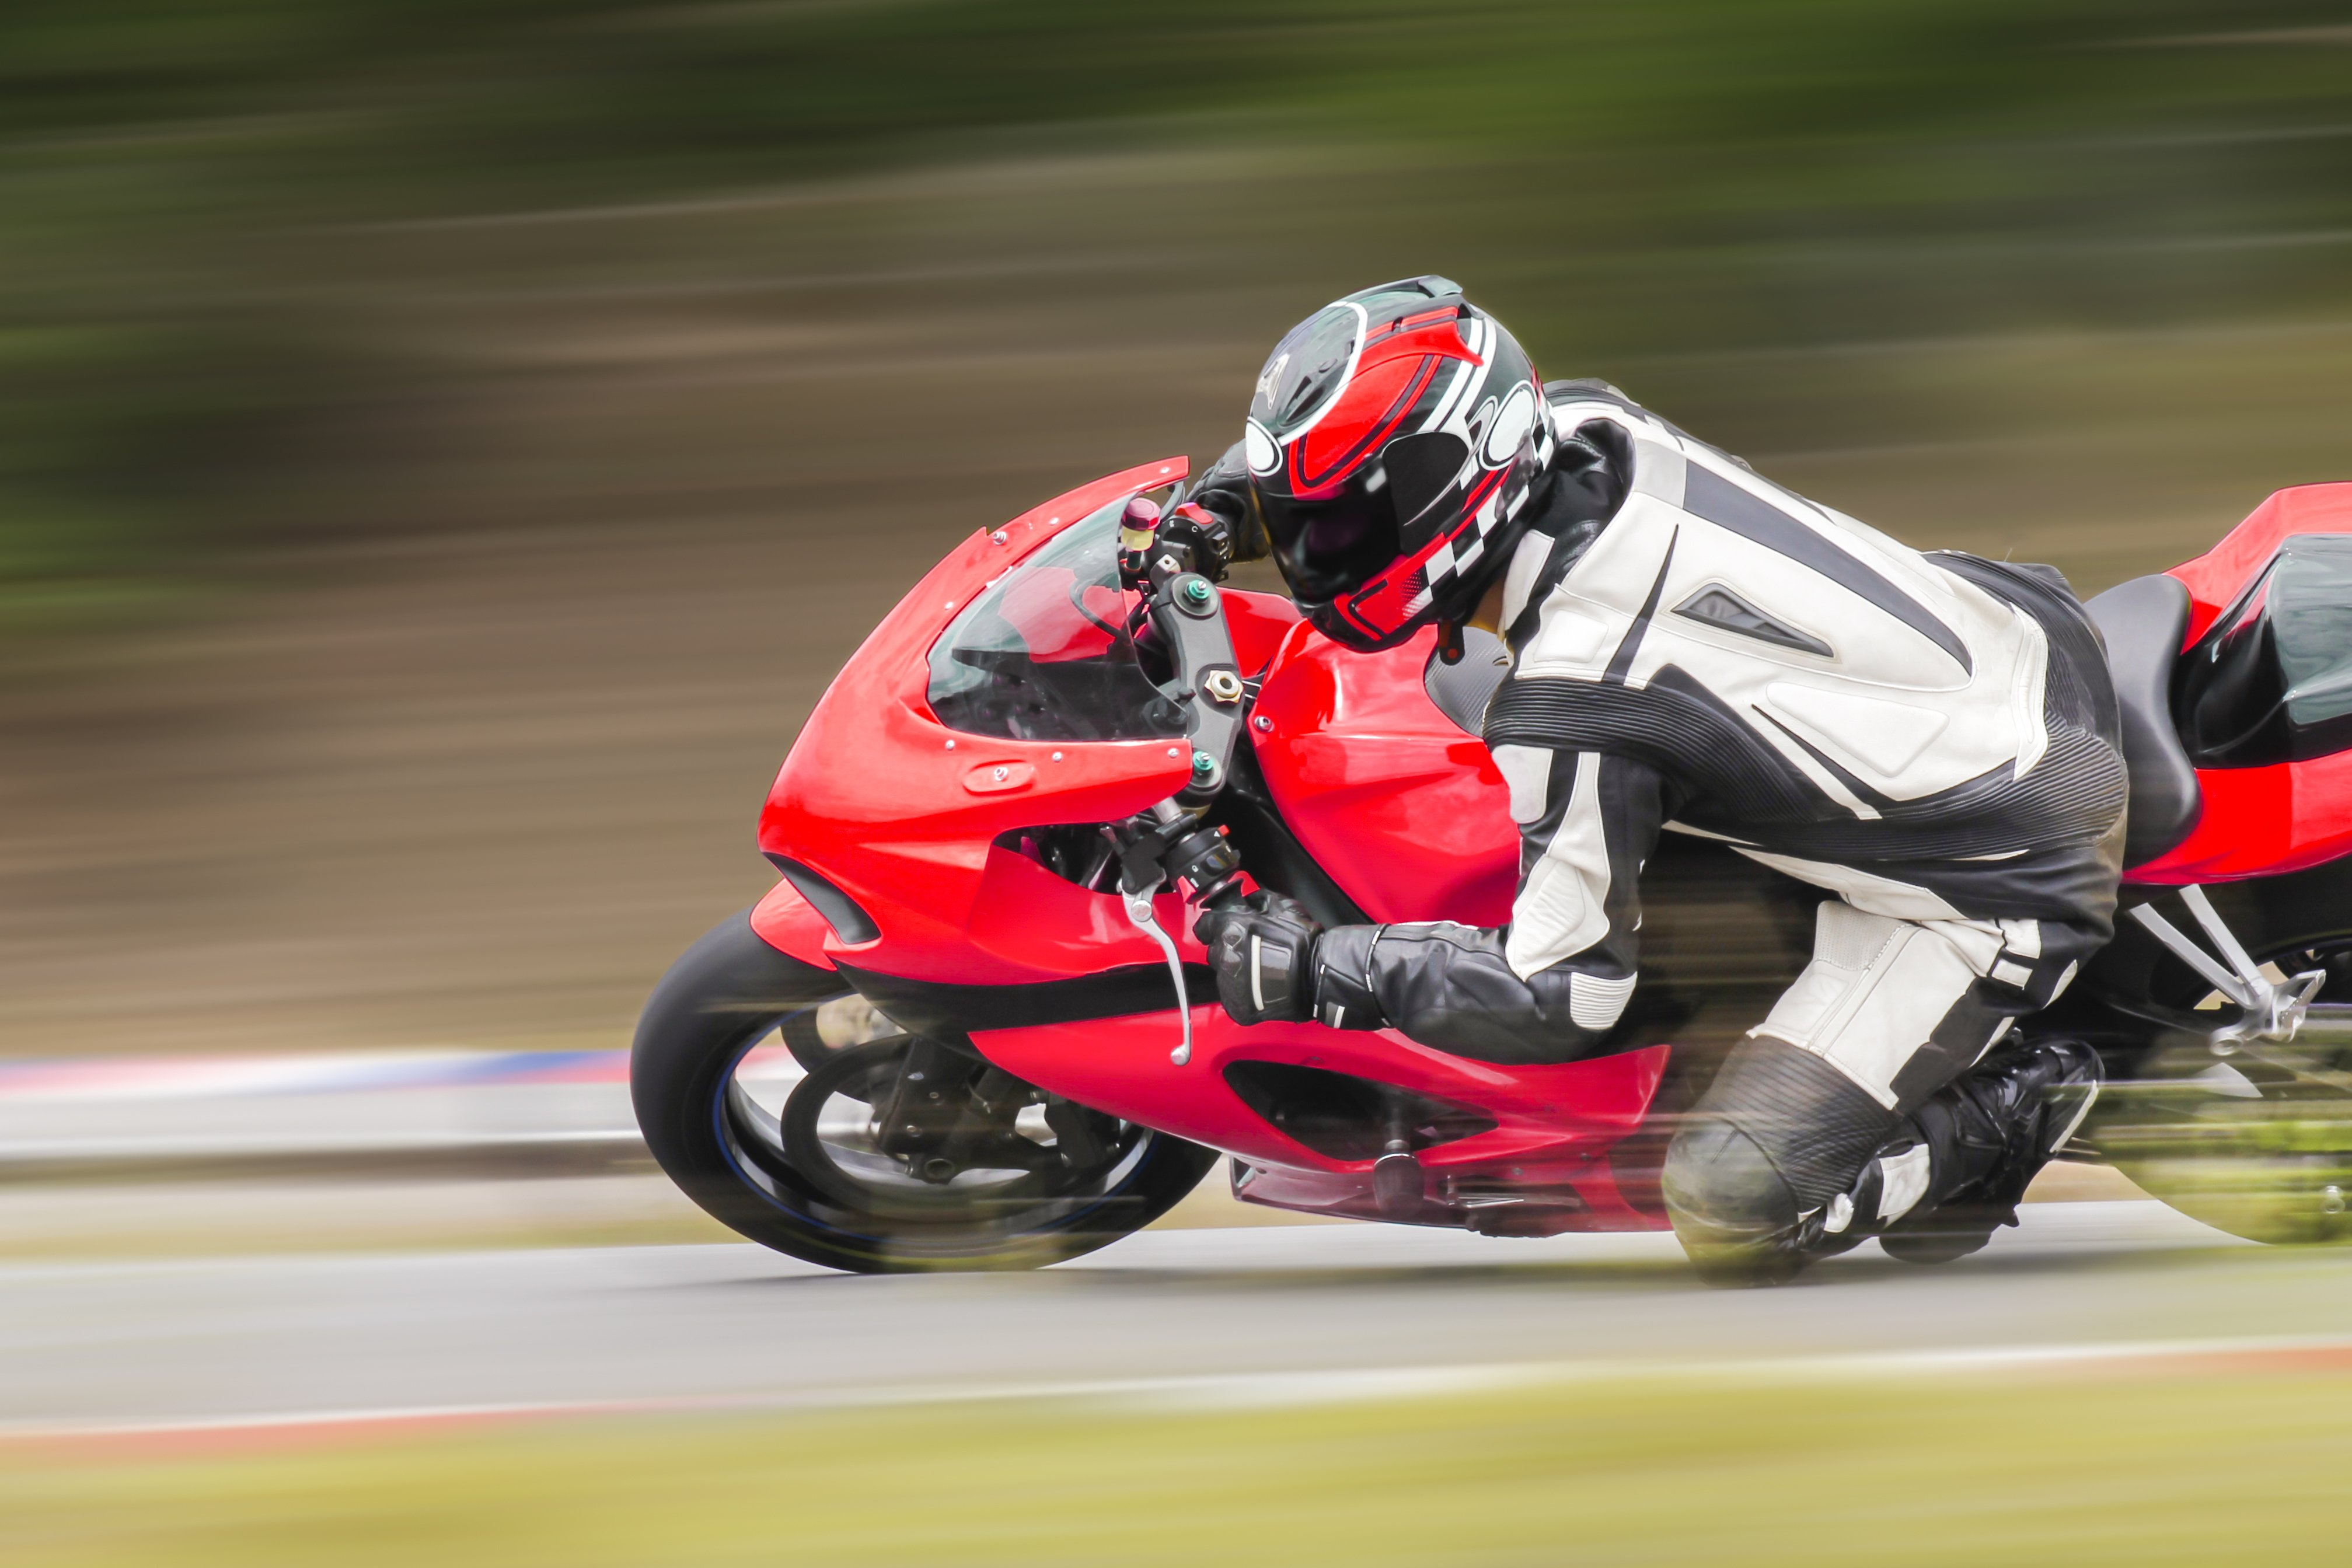 A leading motorcycle racer on the racetrack. | Photo: shutterstock